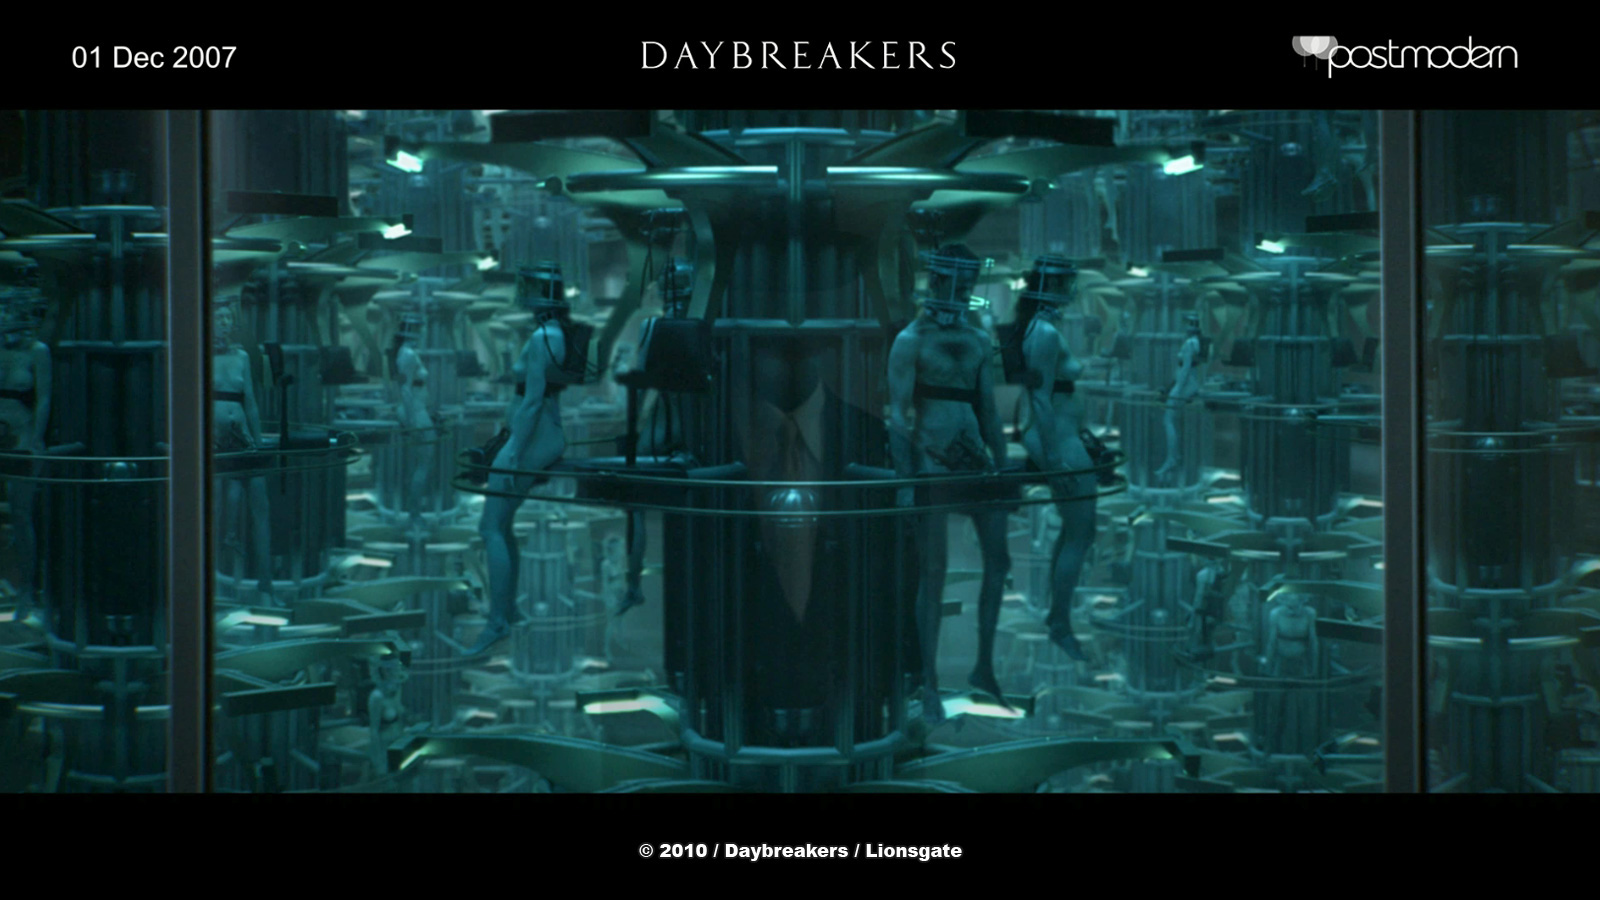 DAYBREAKERS: James Rogers - VFX Supervisor - Postmodern - The Art of